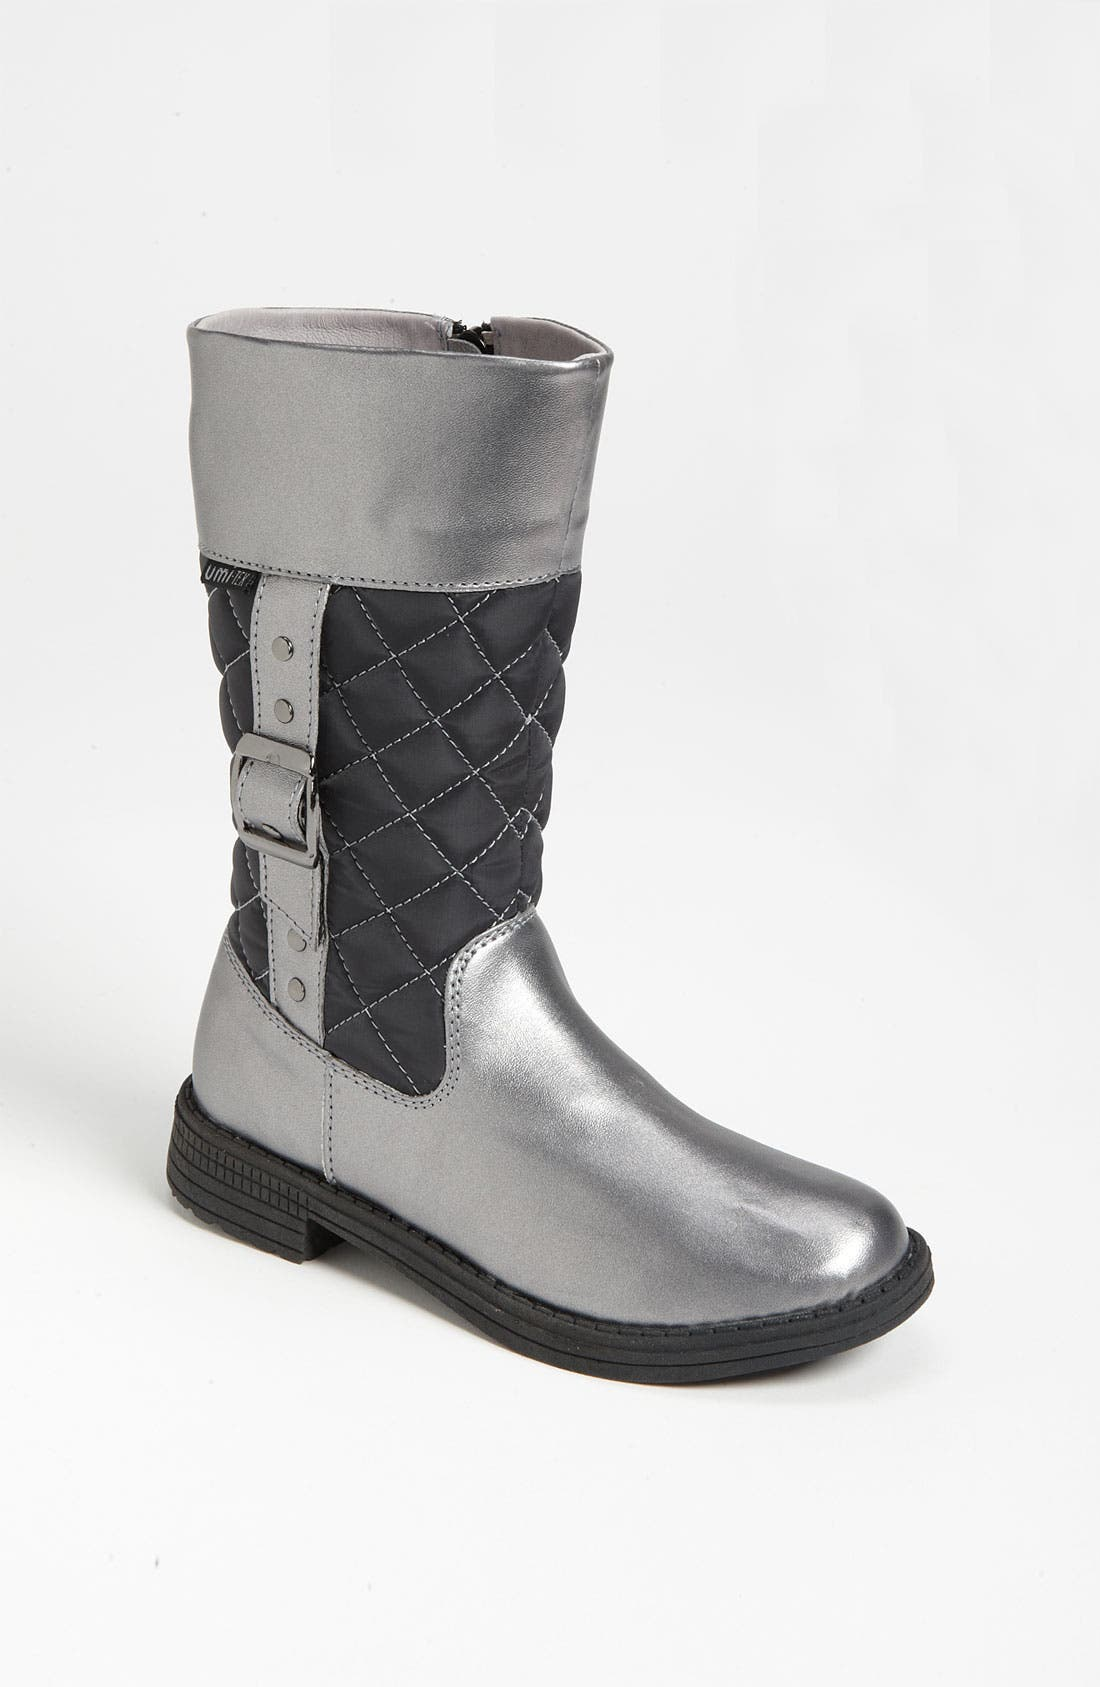 Alternate Image 1 Selected - Umi 'Quiltee' Boot (Toddler, Little Kid & Big Kid)